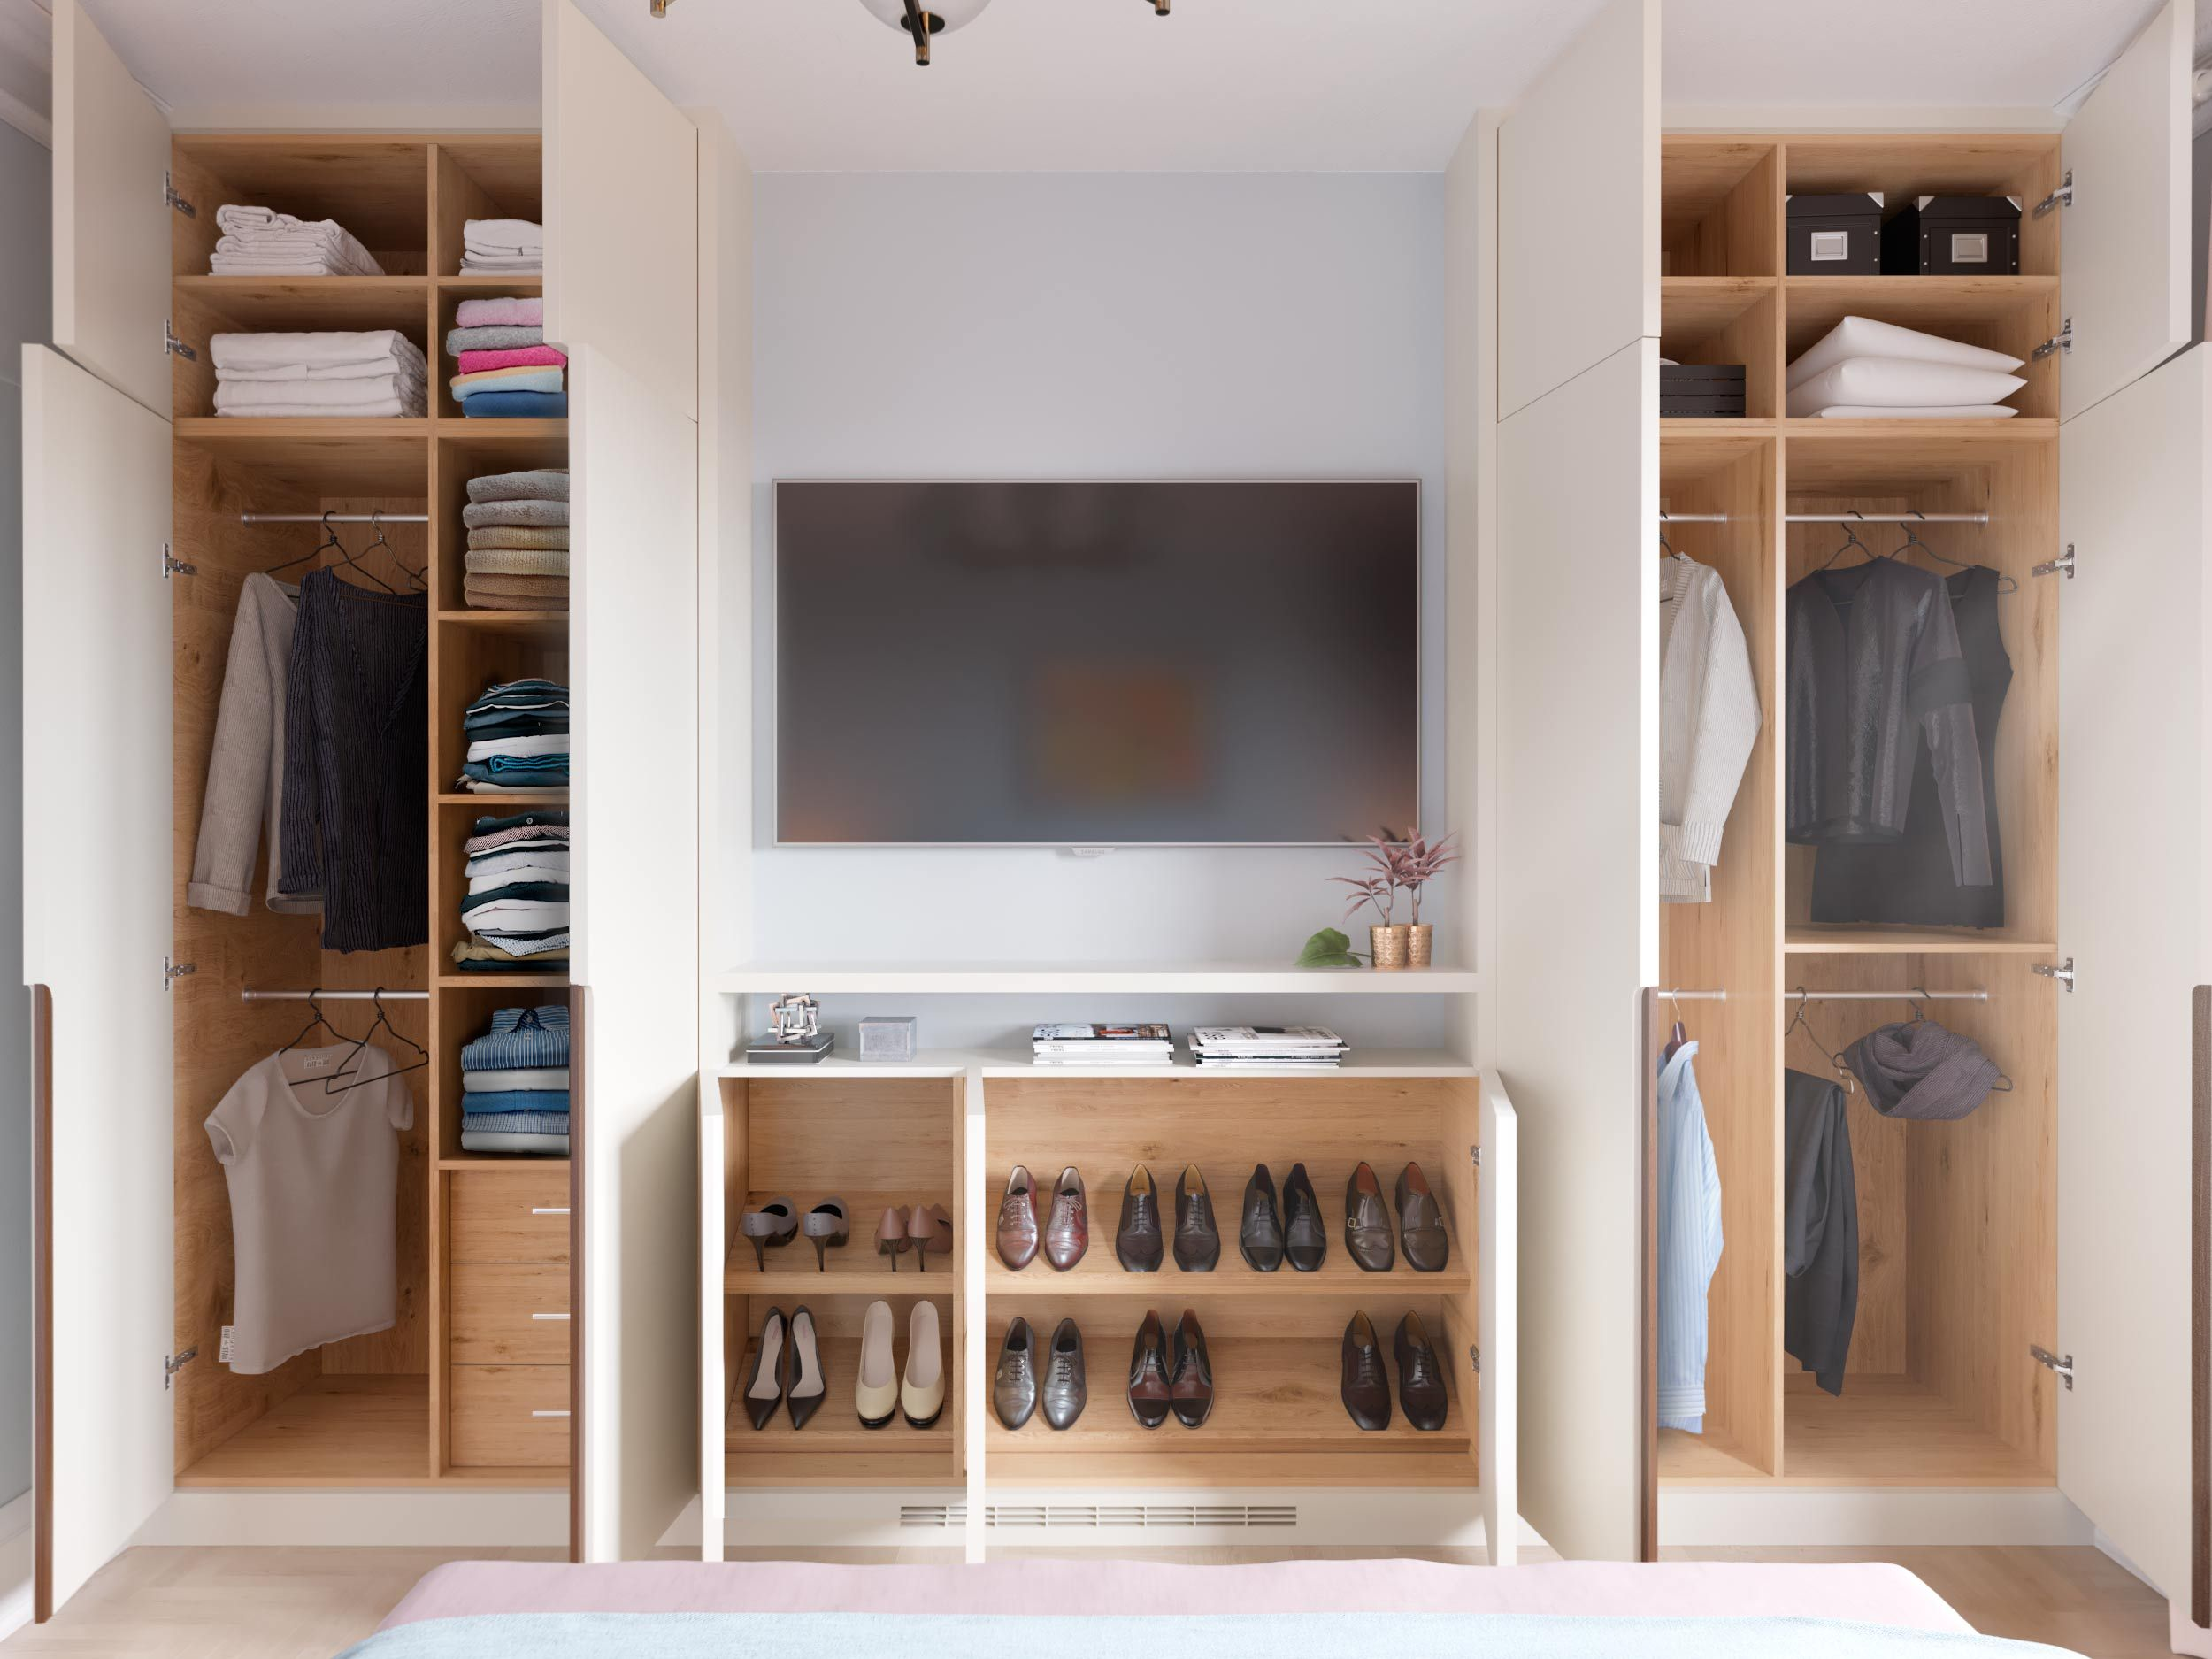 Built In Cabinets For Closet Space Built In Wardrobe Ideas Alcove Bedroom Built Ins Bedroom Built In Wardrobe